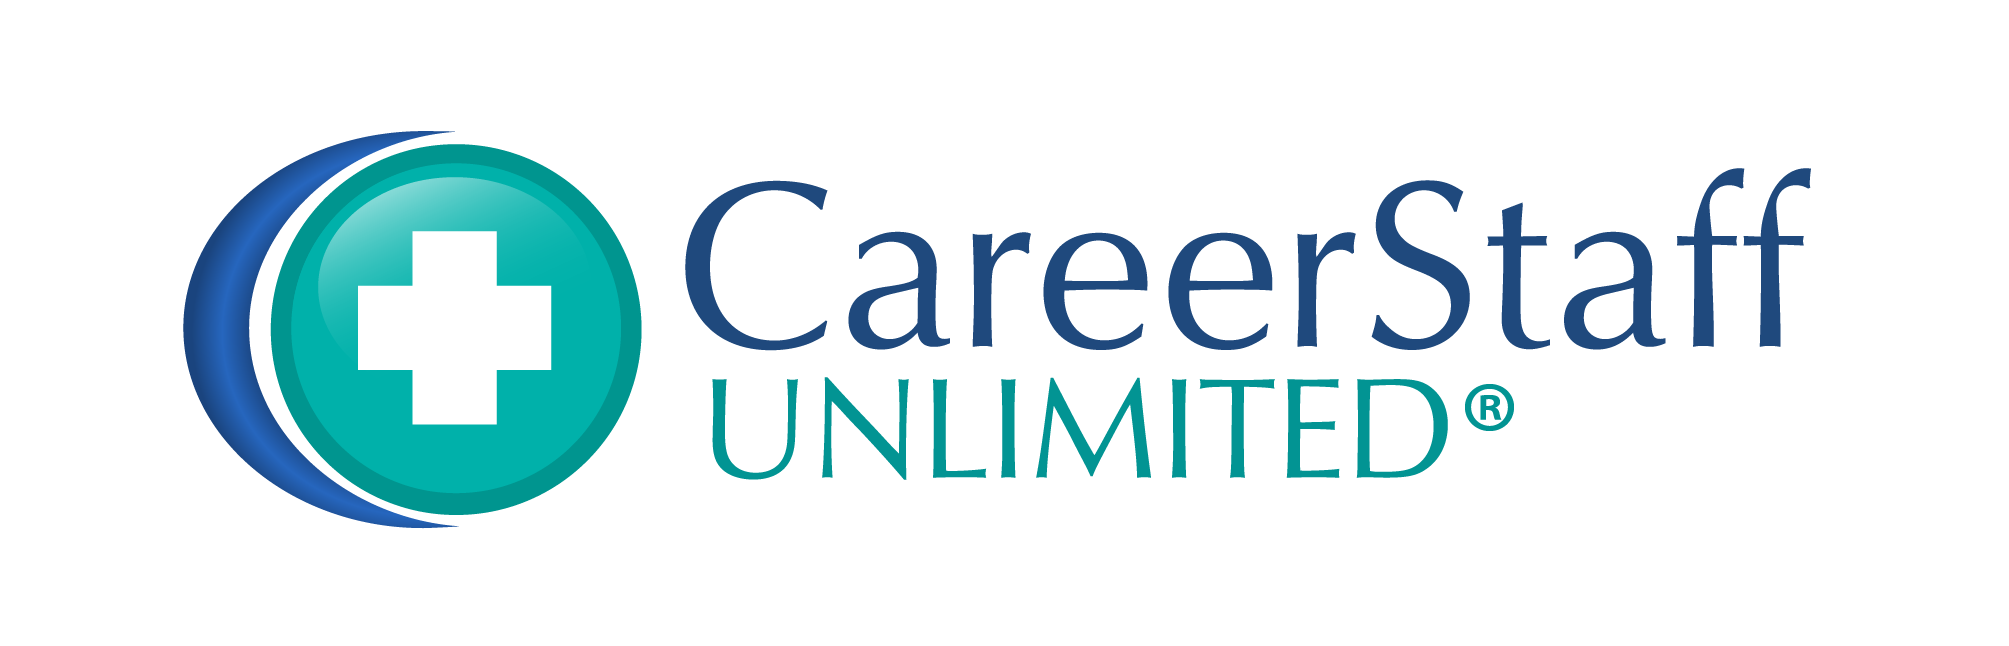 Career Staff Unlimited